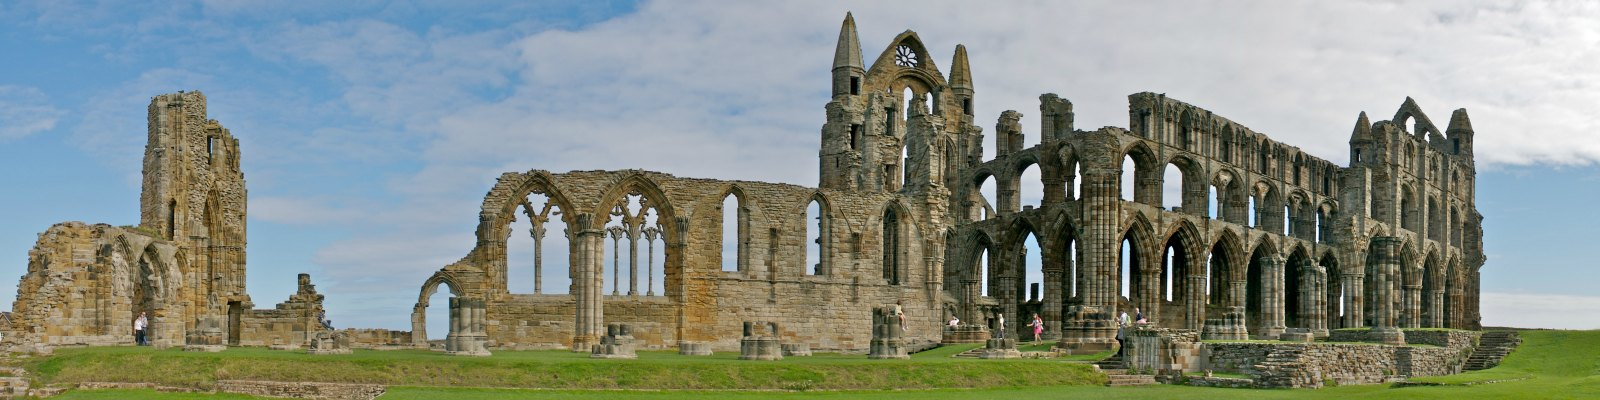 Whitby Abbey, the setting for Bram Stoker's Dracula